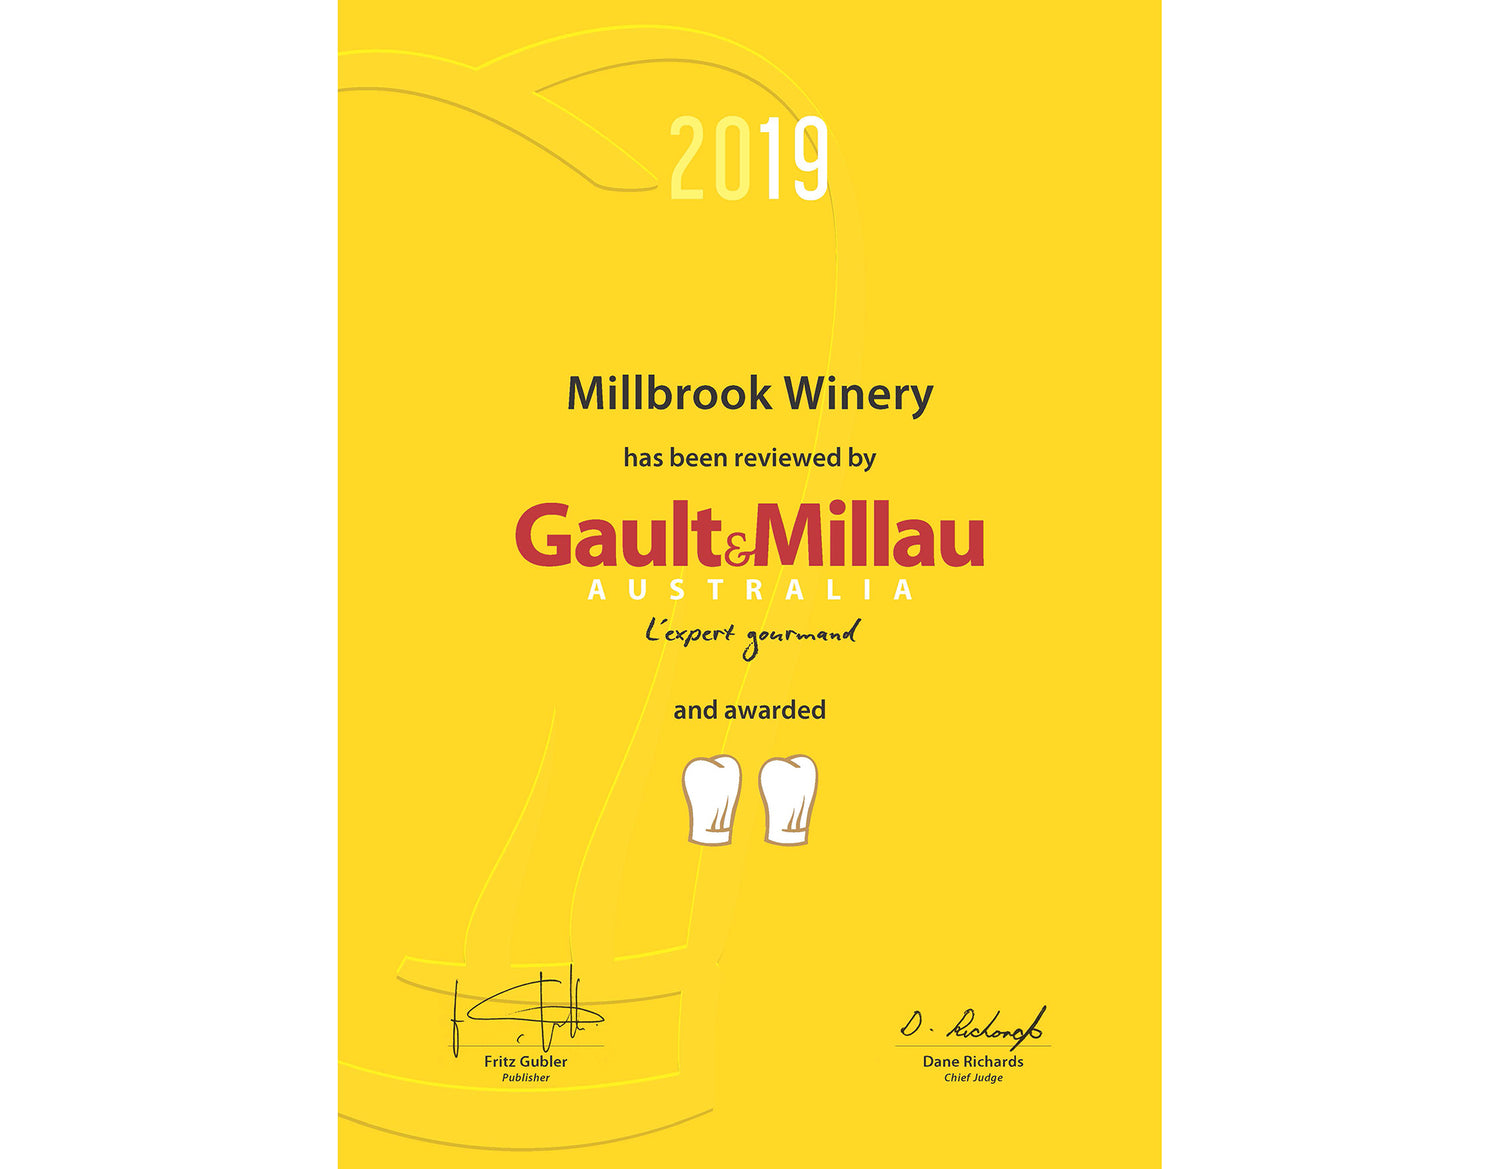 millbrook winery restaurant featured in latest gault & millau guide